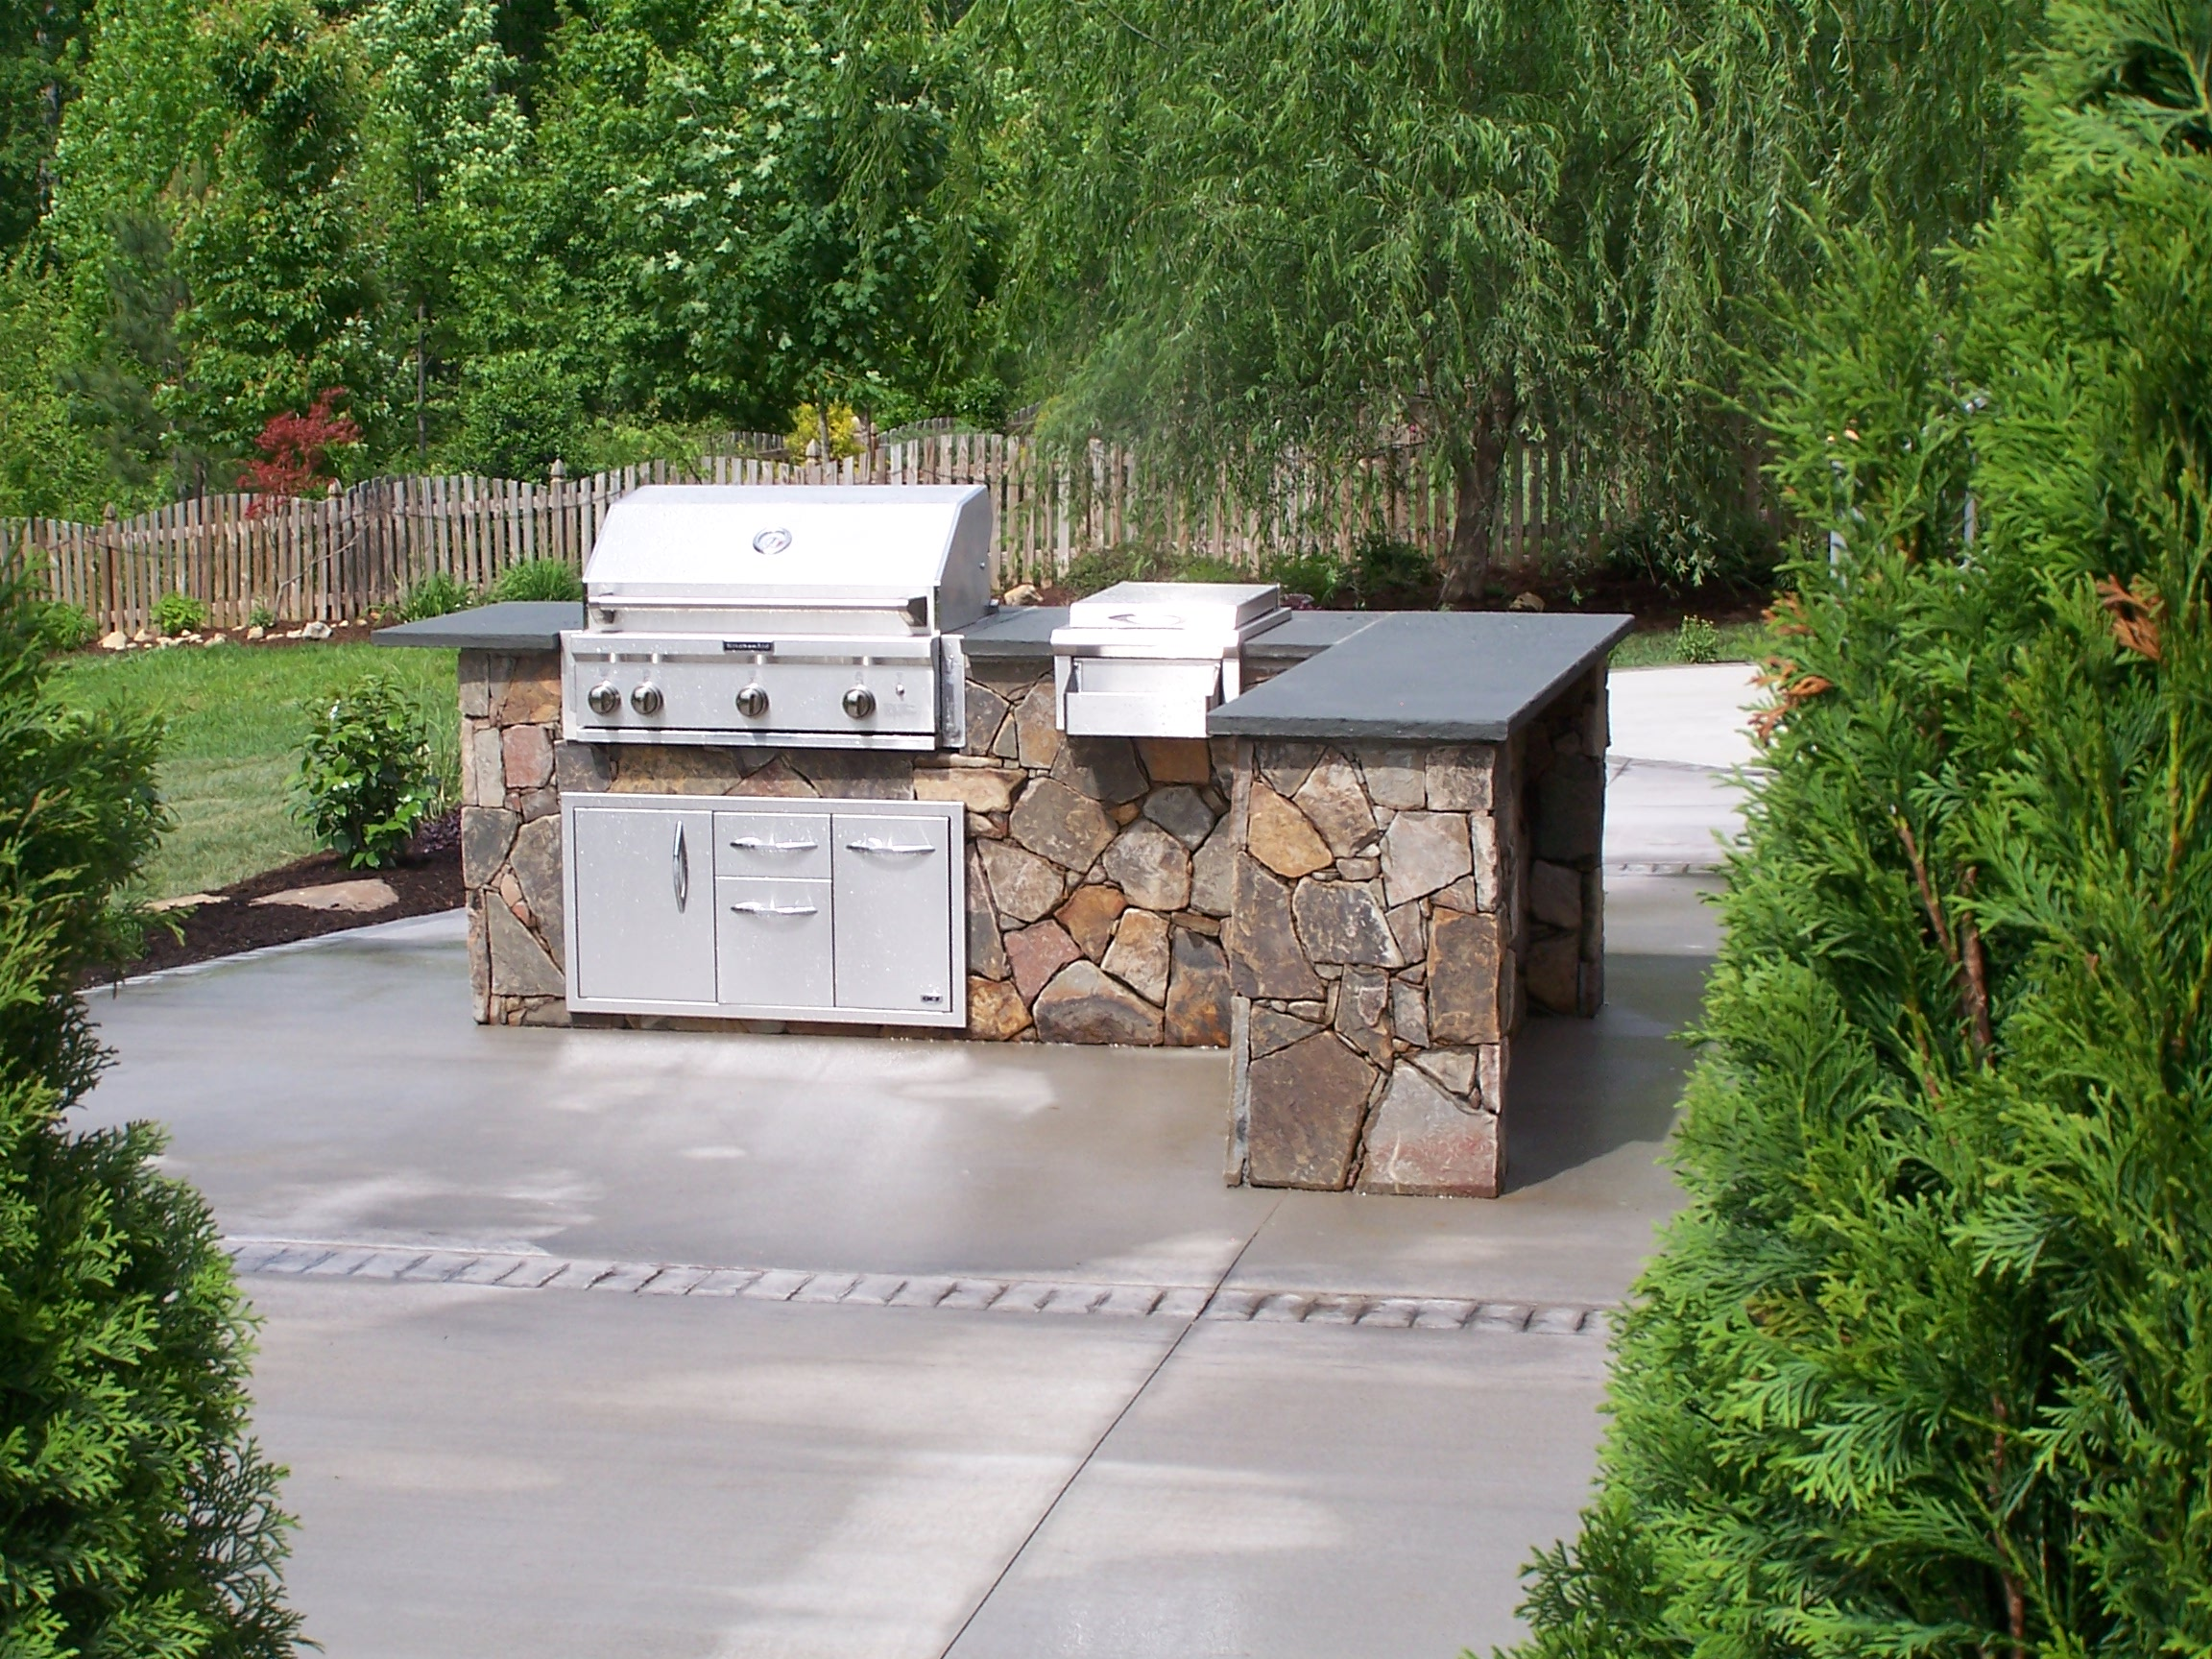 outdoor kitchen design  We build decks sunrooms screened porches outdoor living rooms and